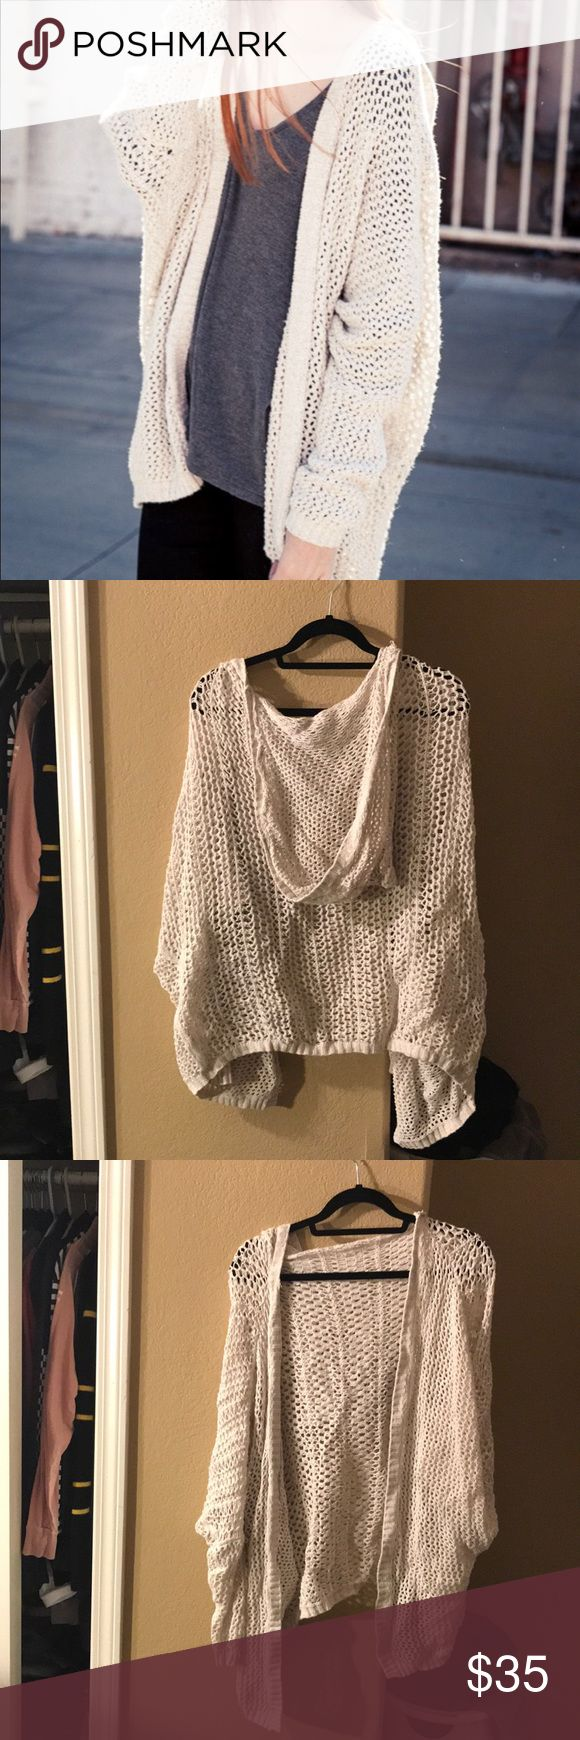 Brandy Melville cardigan In great condition ✨ no trades Brandy Melville Sweaters Cardigans